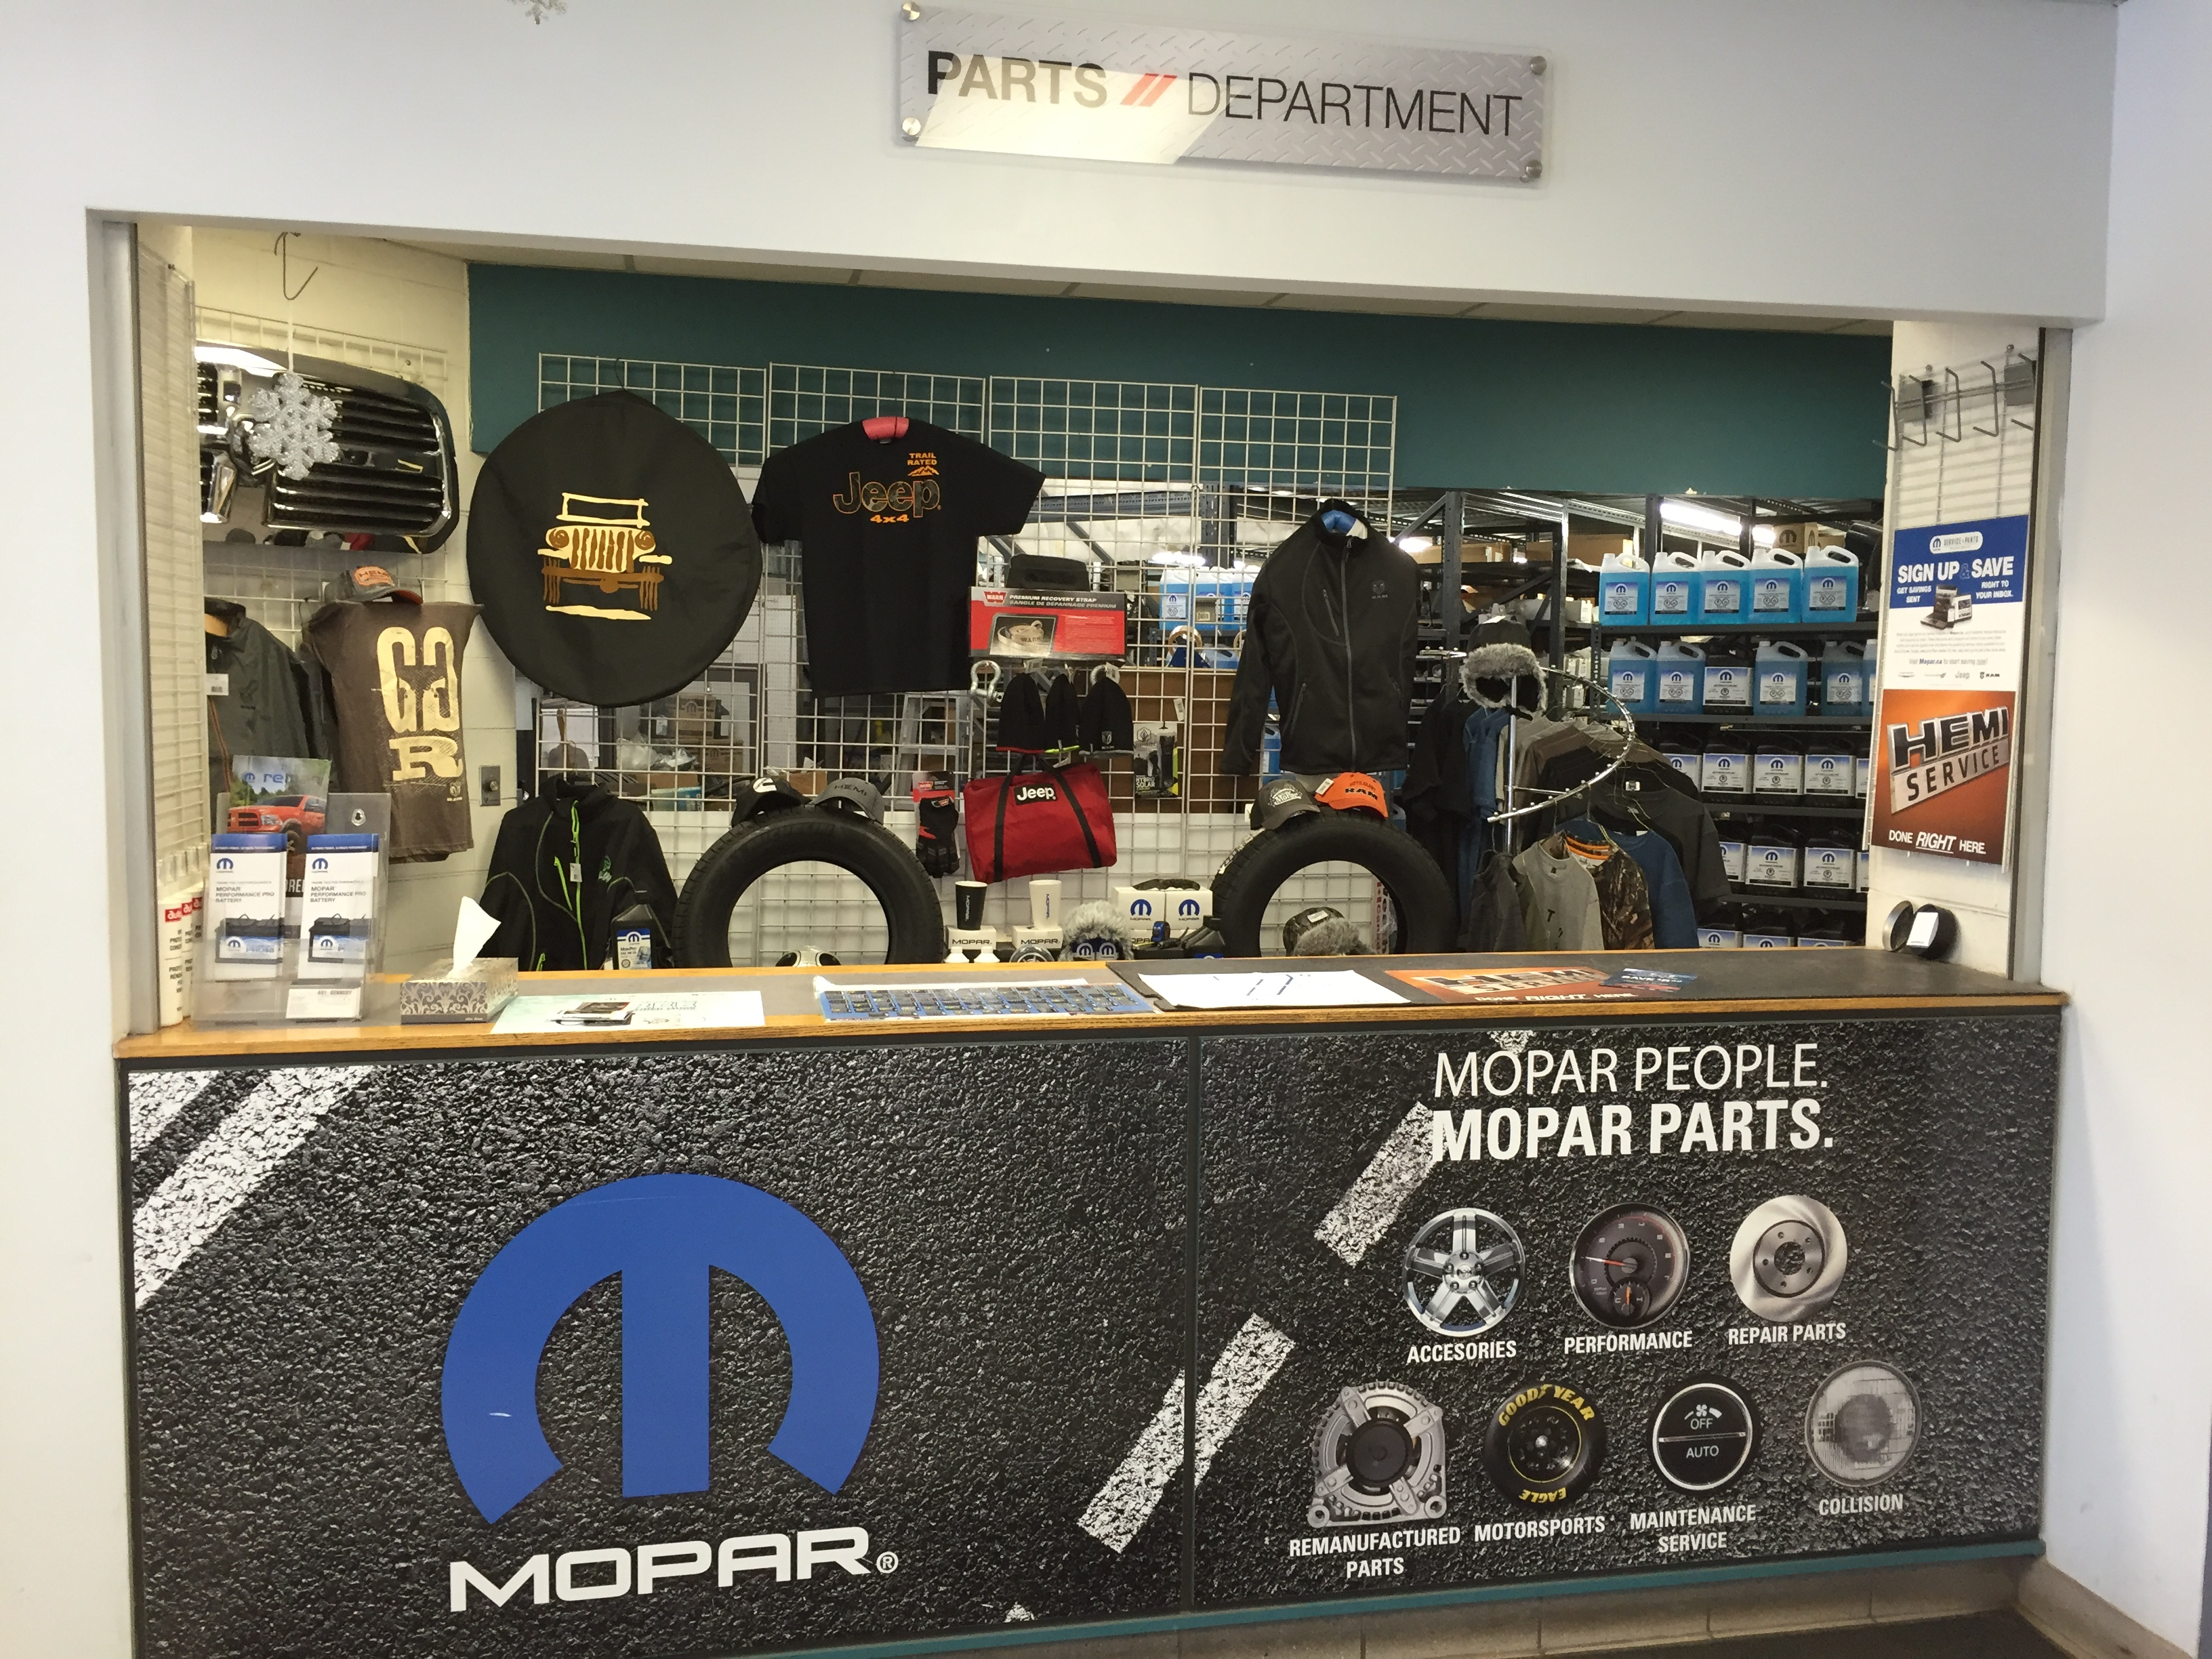 chrysler toronto dealer department accessories welcome serpa dodge ram jeep the in parts to img and